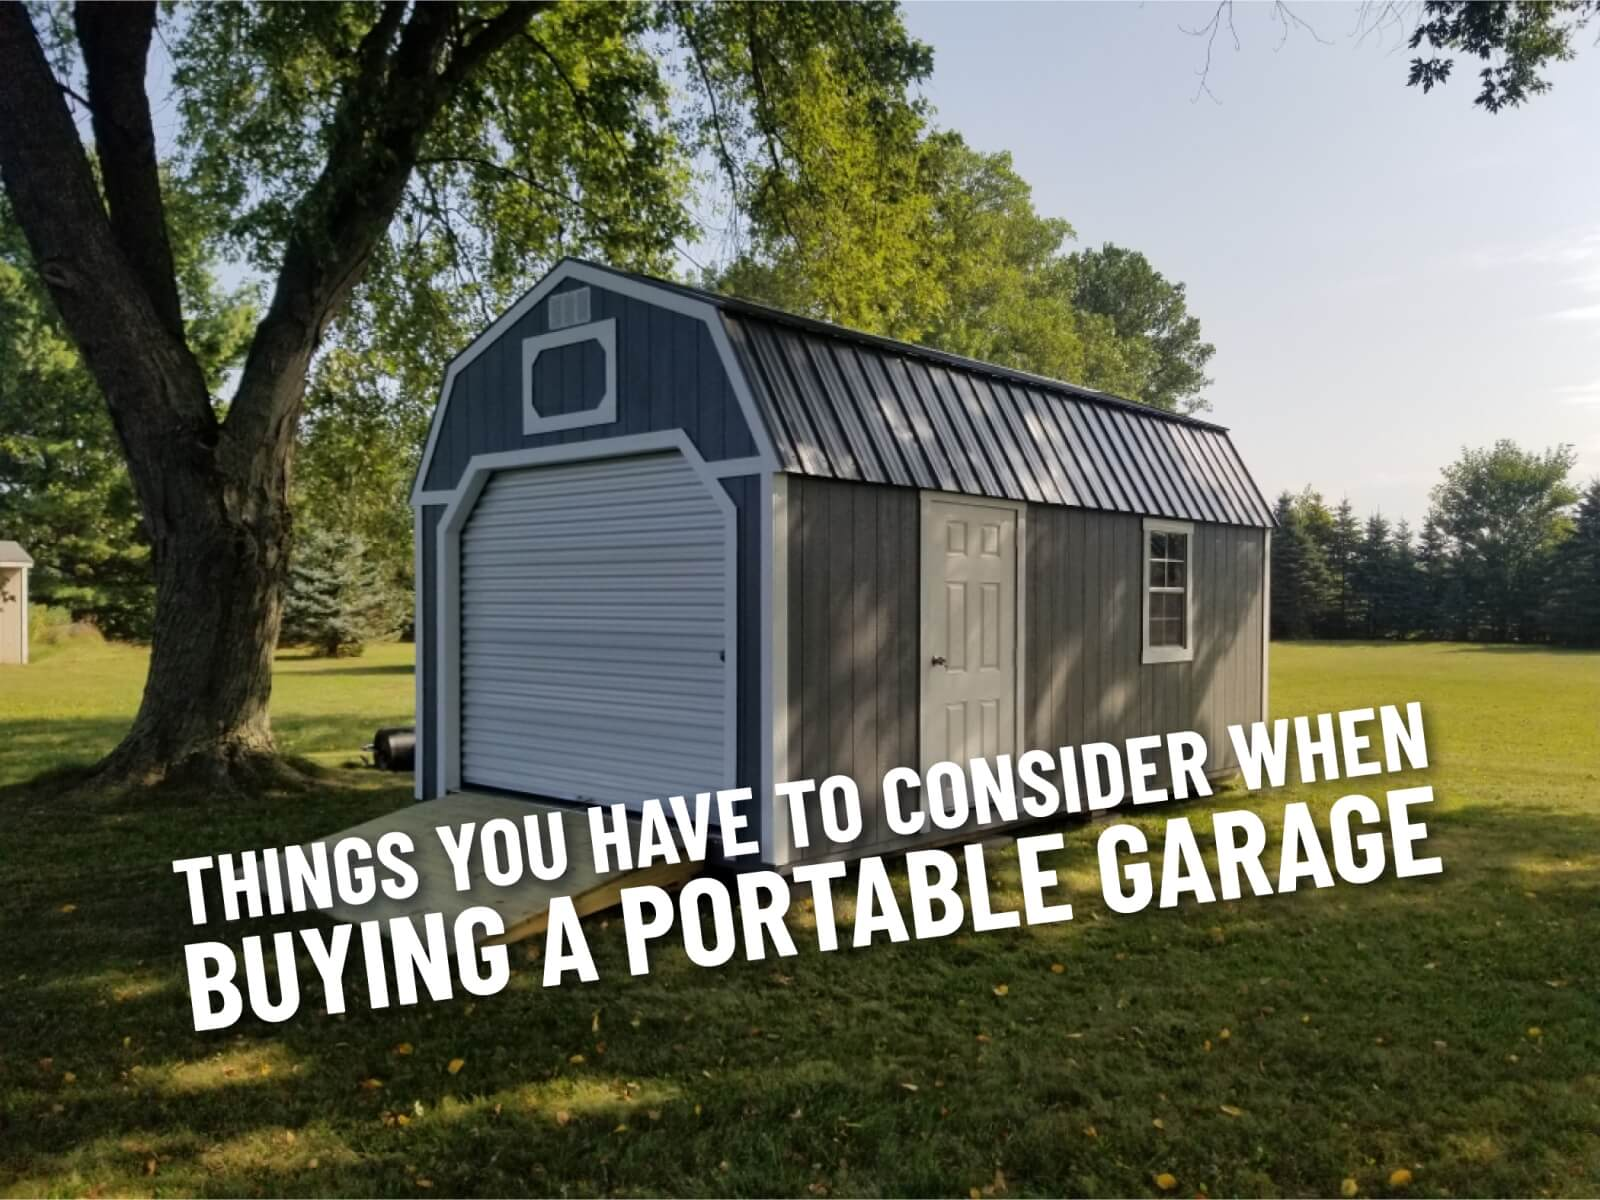 Things to Consider When Buying a Portable Garage